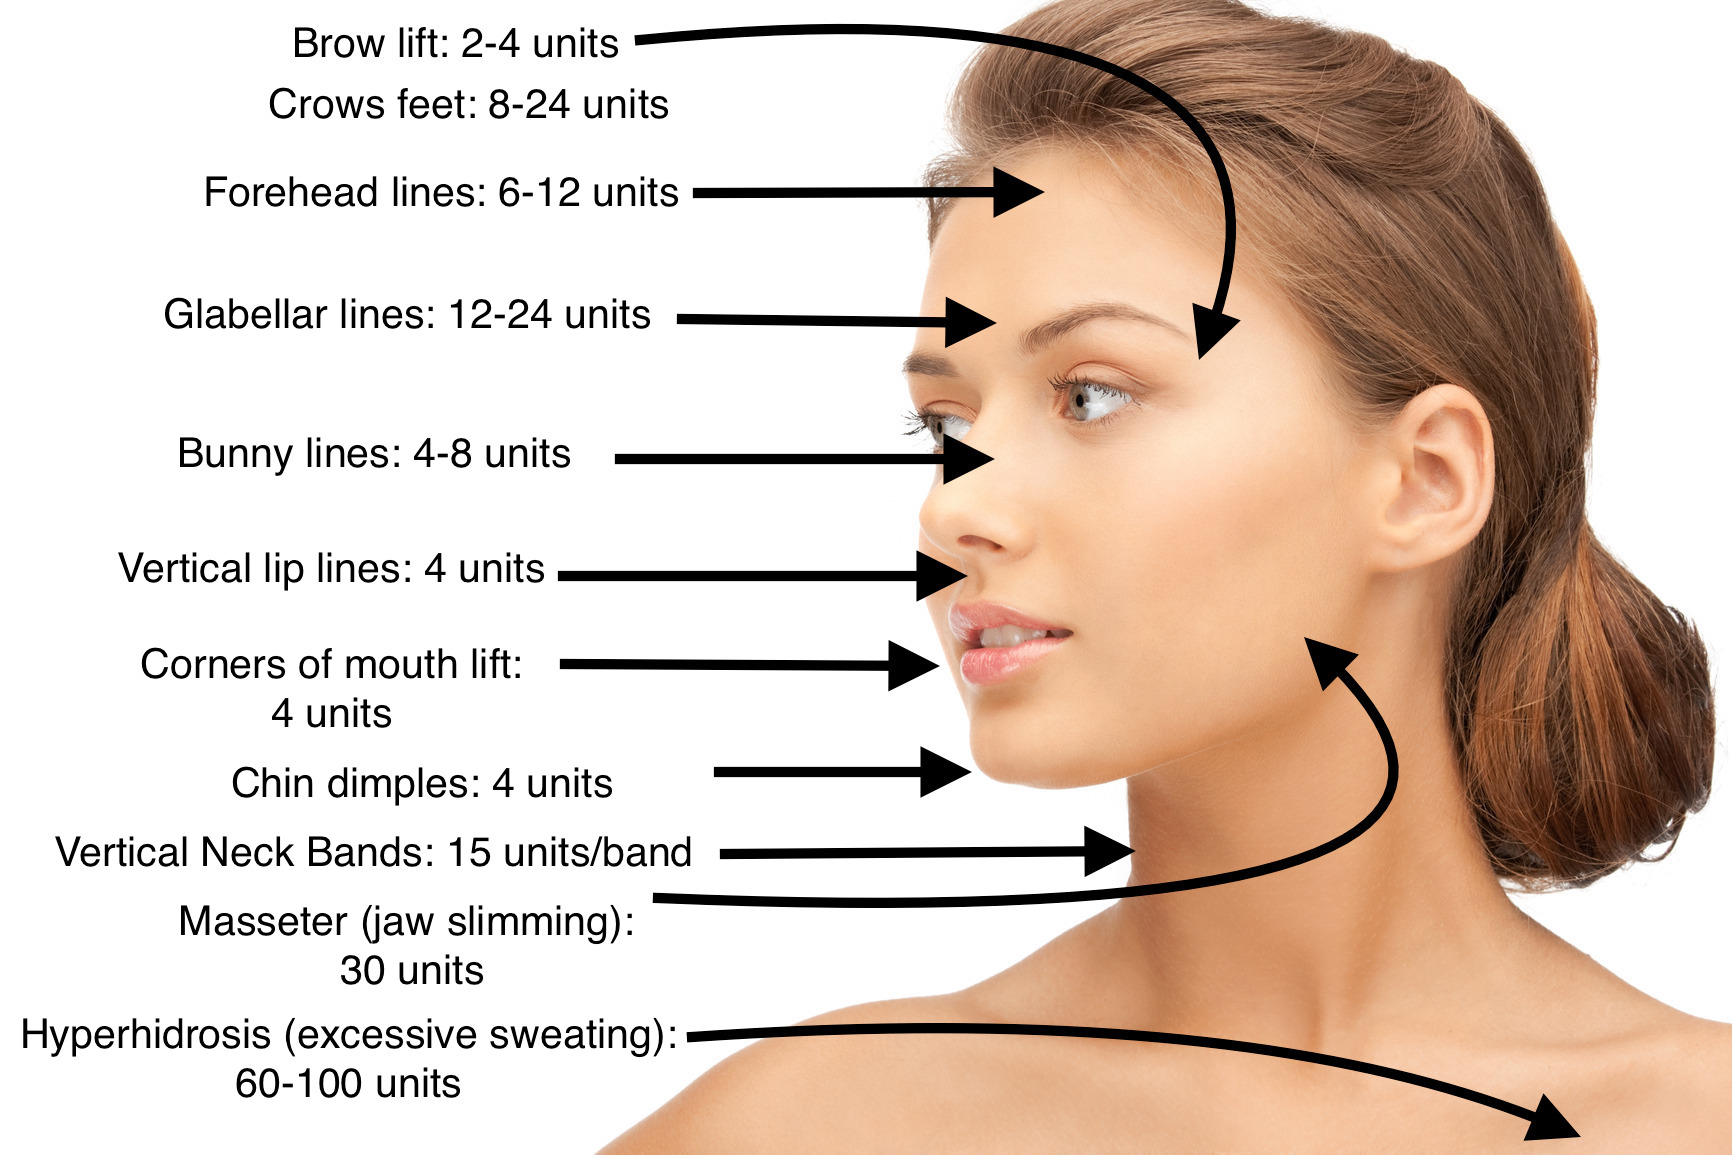 Botox RI Prices | Simply Injectables Denver